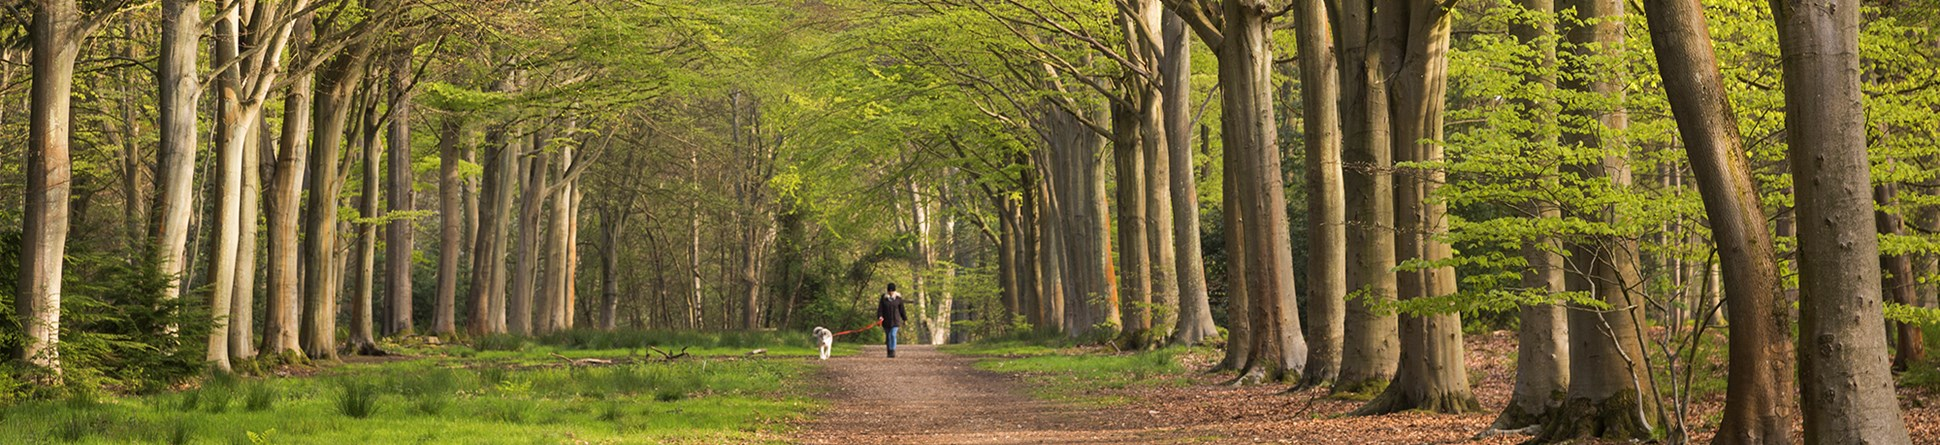 Person with a dog walking along an avenue lined with trees